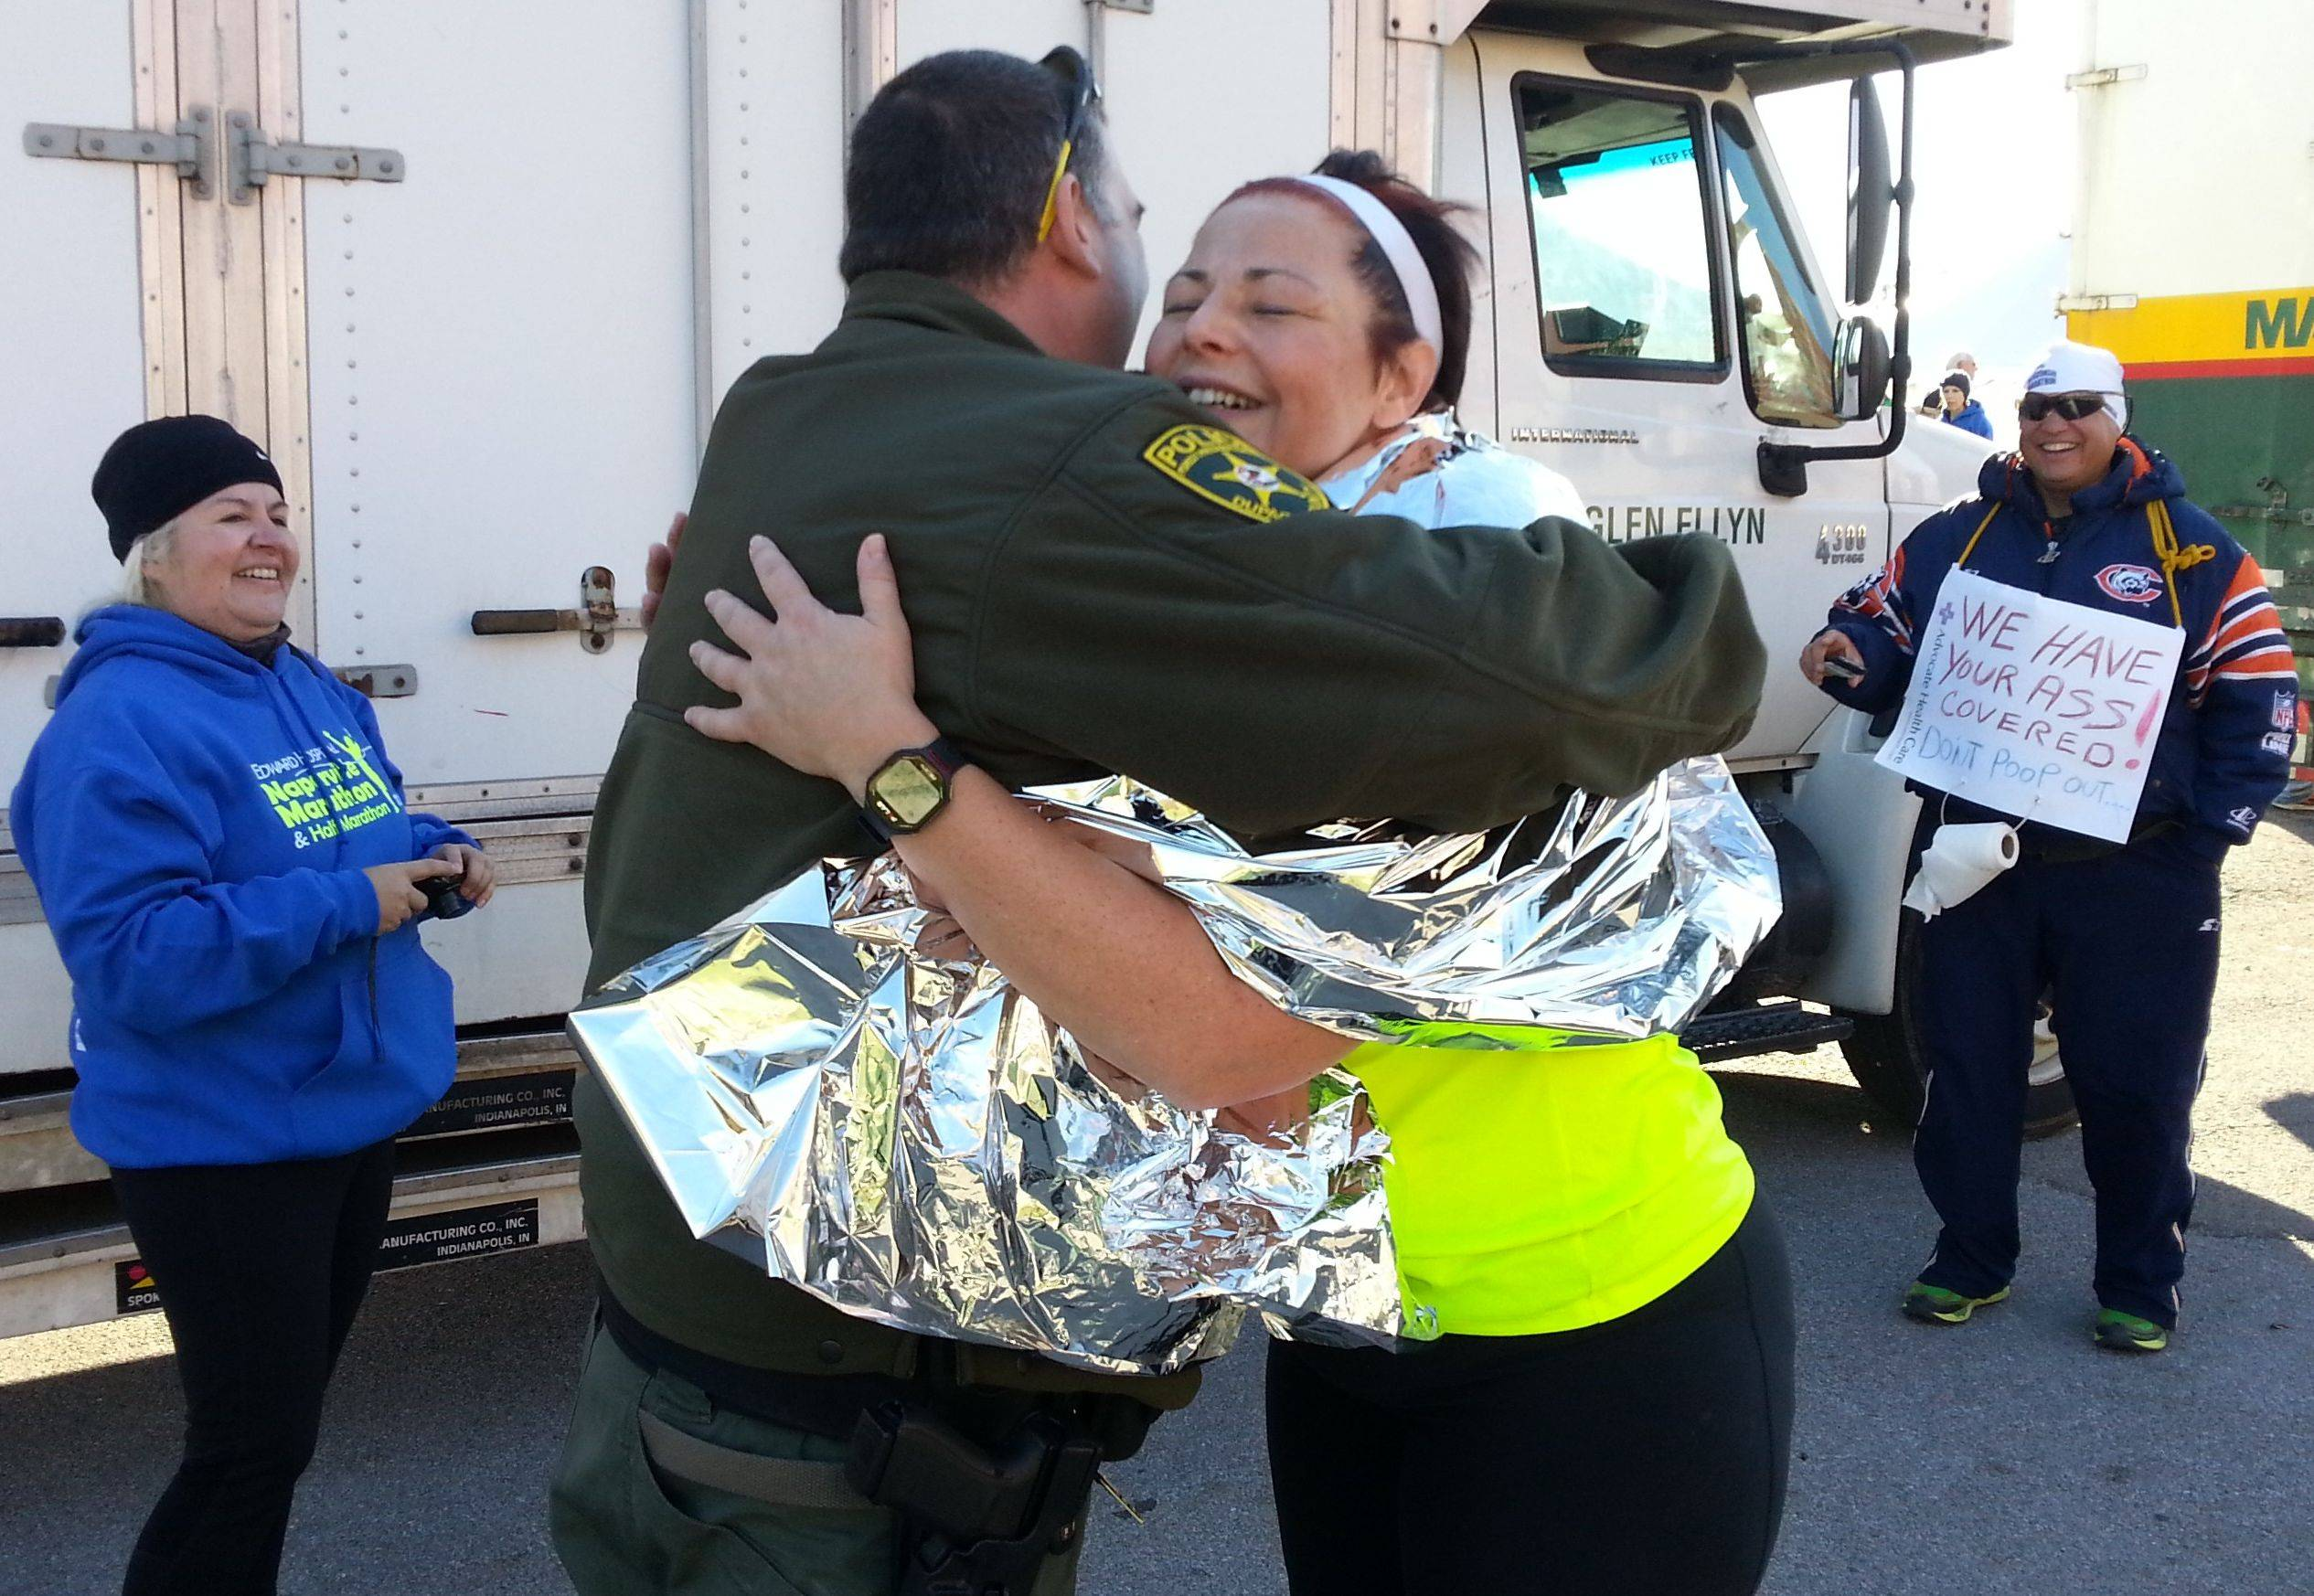 Naperville Marathon runner Kathy Contreras of Aurora embraces DuPage County Forest Preserve District police officer Lou Addante, who helped guide her to the finish line Sunday after she became lost during her seven-hour run.